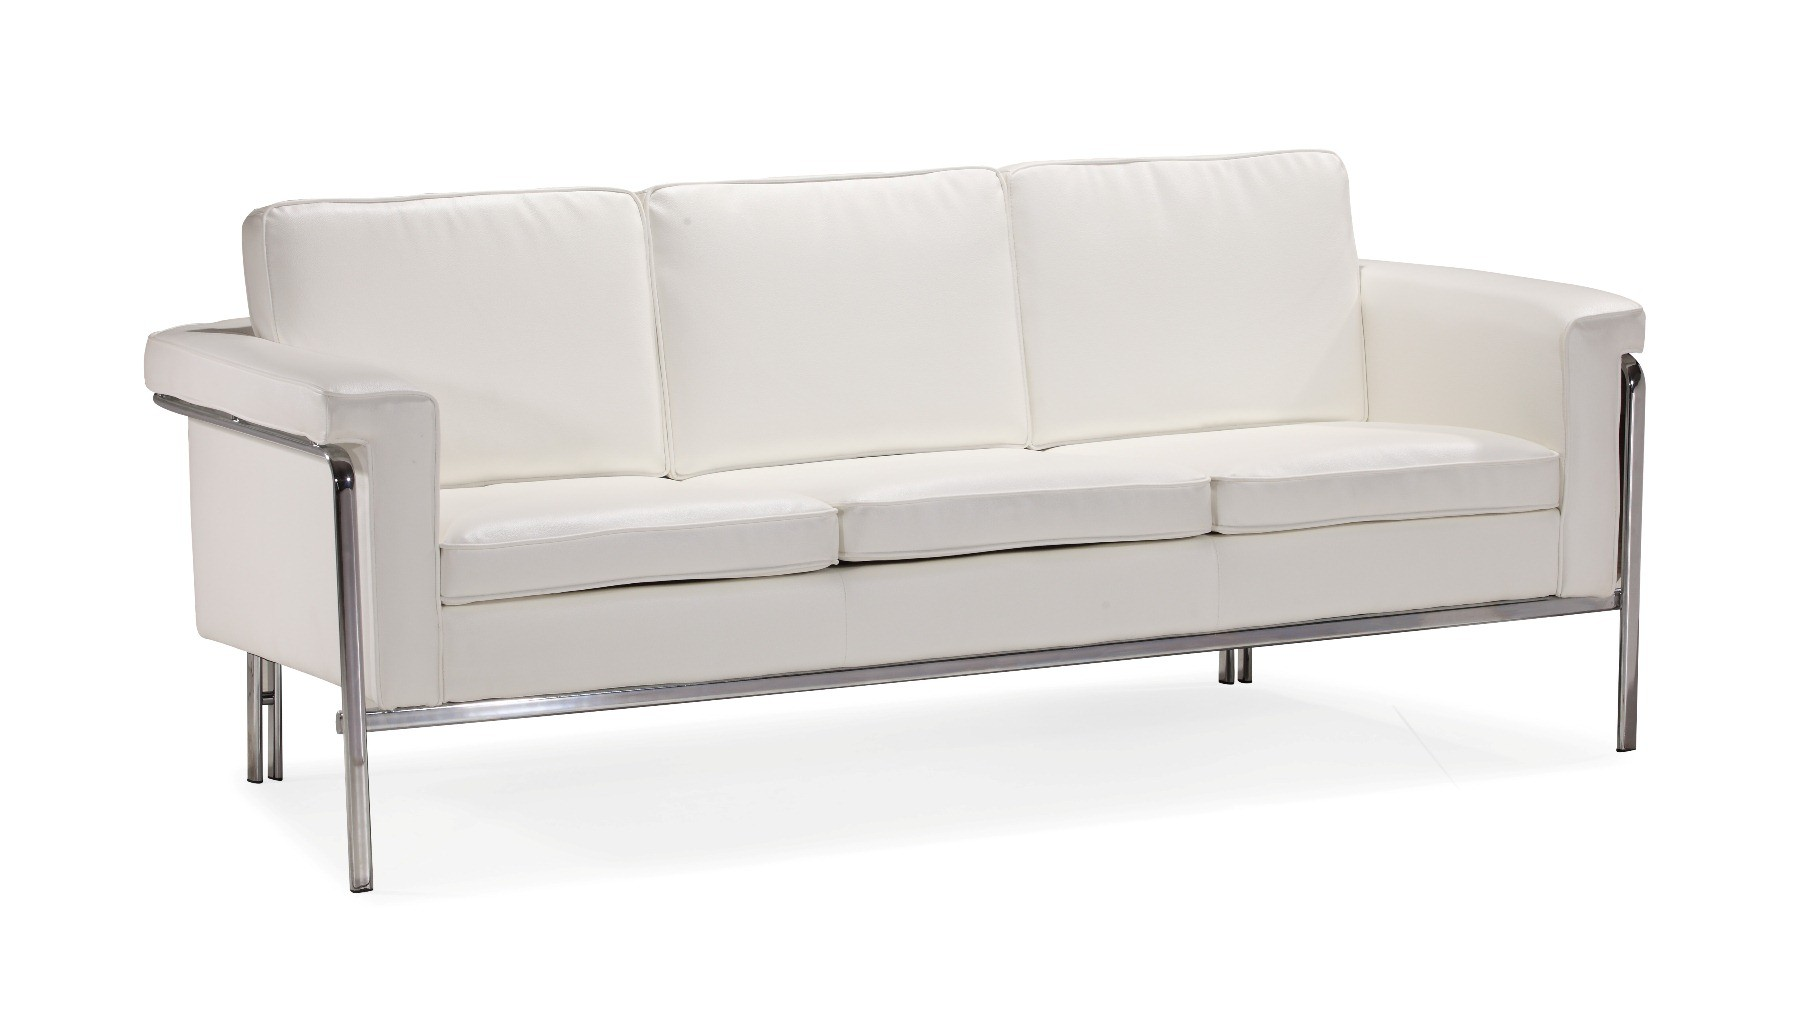 White or black leather contemporary sofa with chrome legs for Modern white furniture